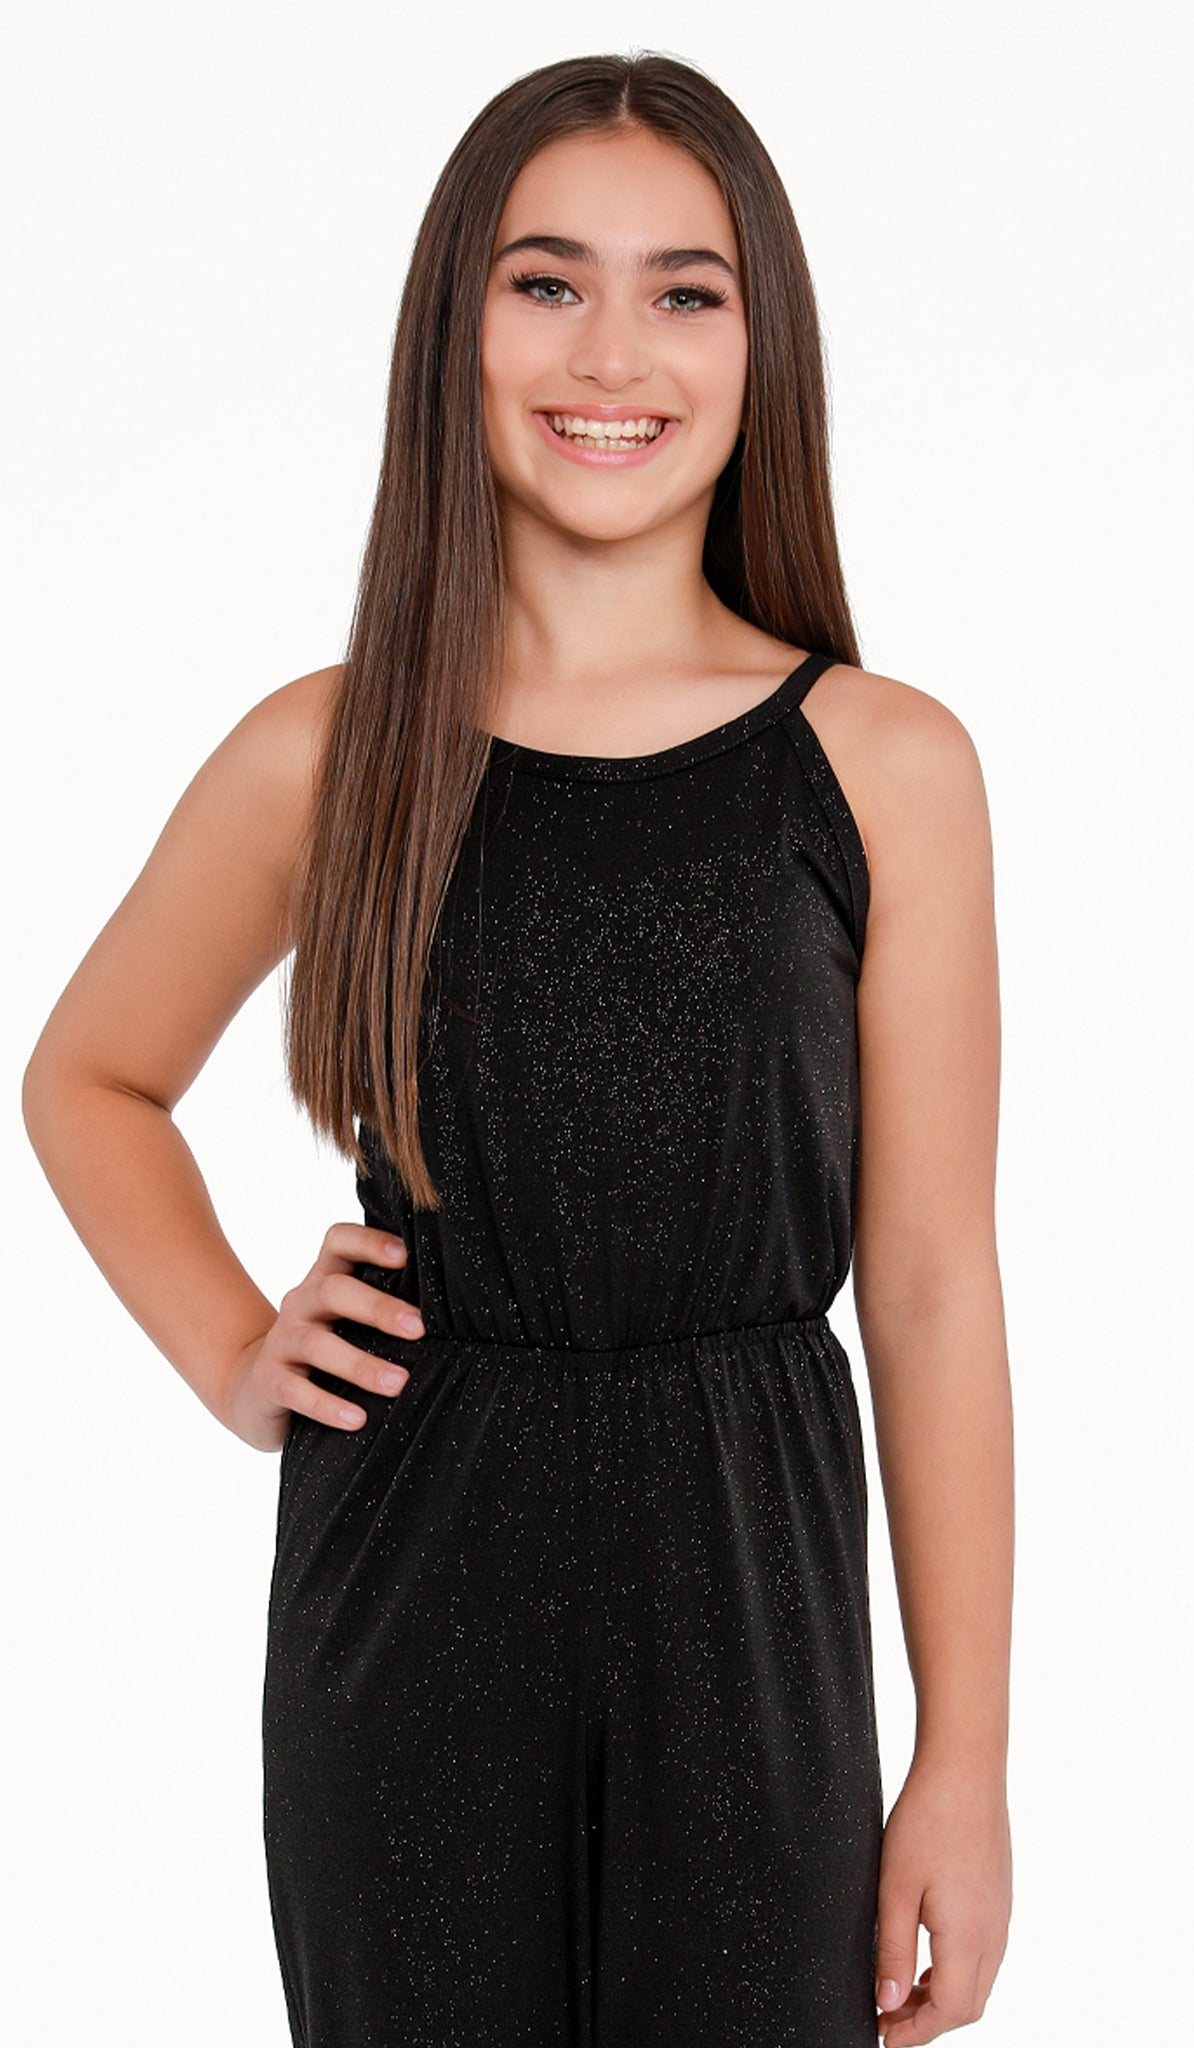 THE EVE JUMPSUIT - Sallymiller.com - [variant title] - | Event & Party Dresses for Tween Girls & Juniors | Weddings Dresses, Bat Mitzvah Dresses, Sweet Sixteen Dresses, Graduation Dresses, Birthday Party Dresses, Bar Mitzvah Dresses, Cotillion Dresses